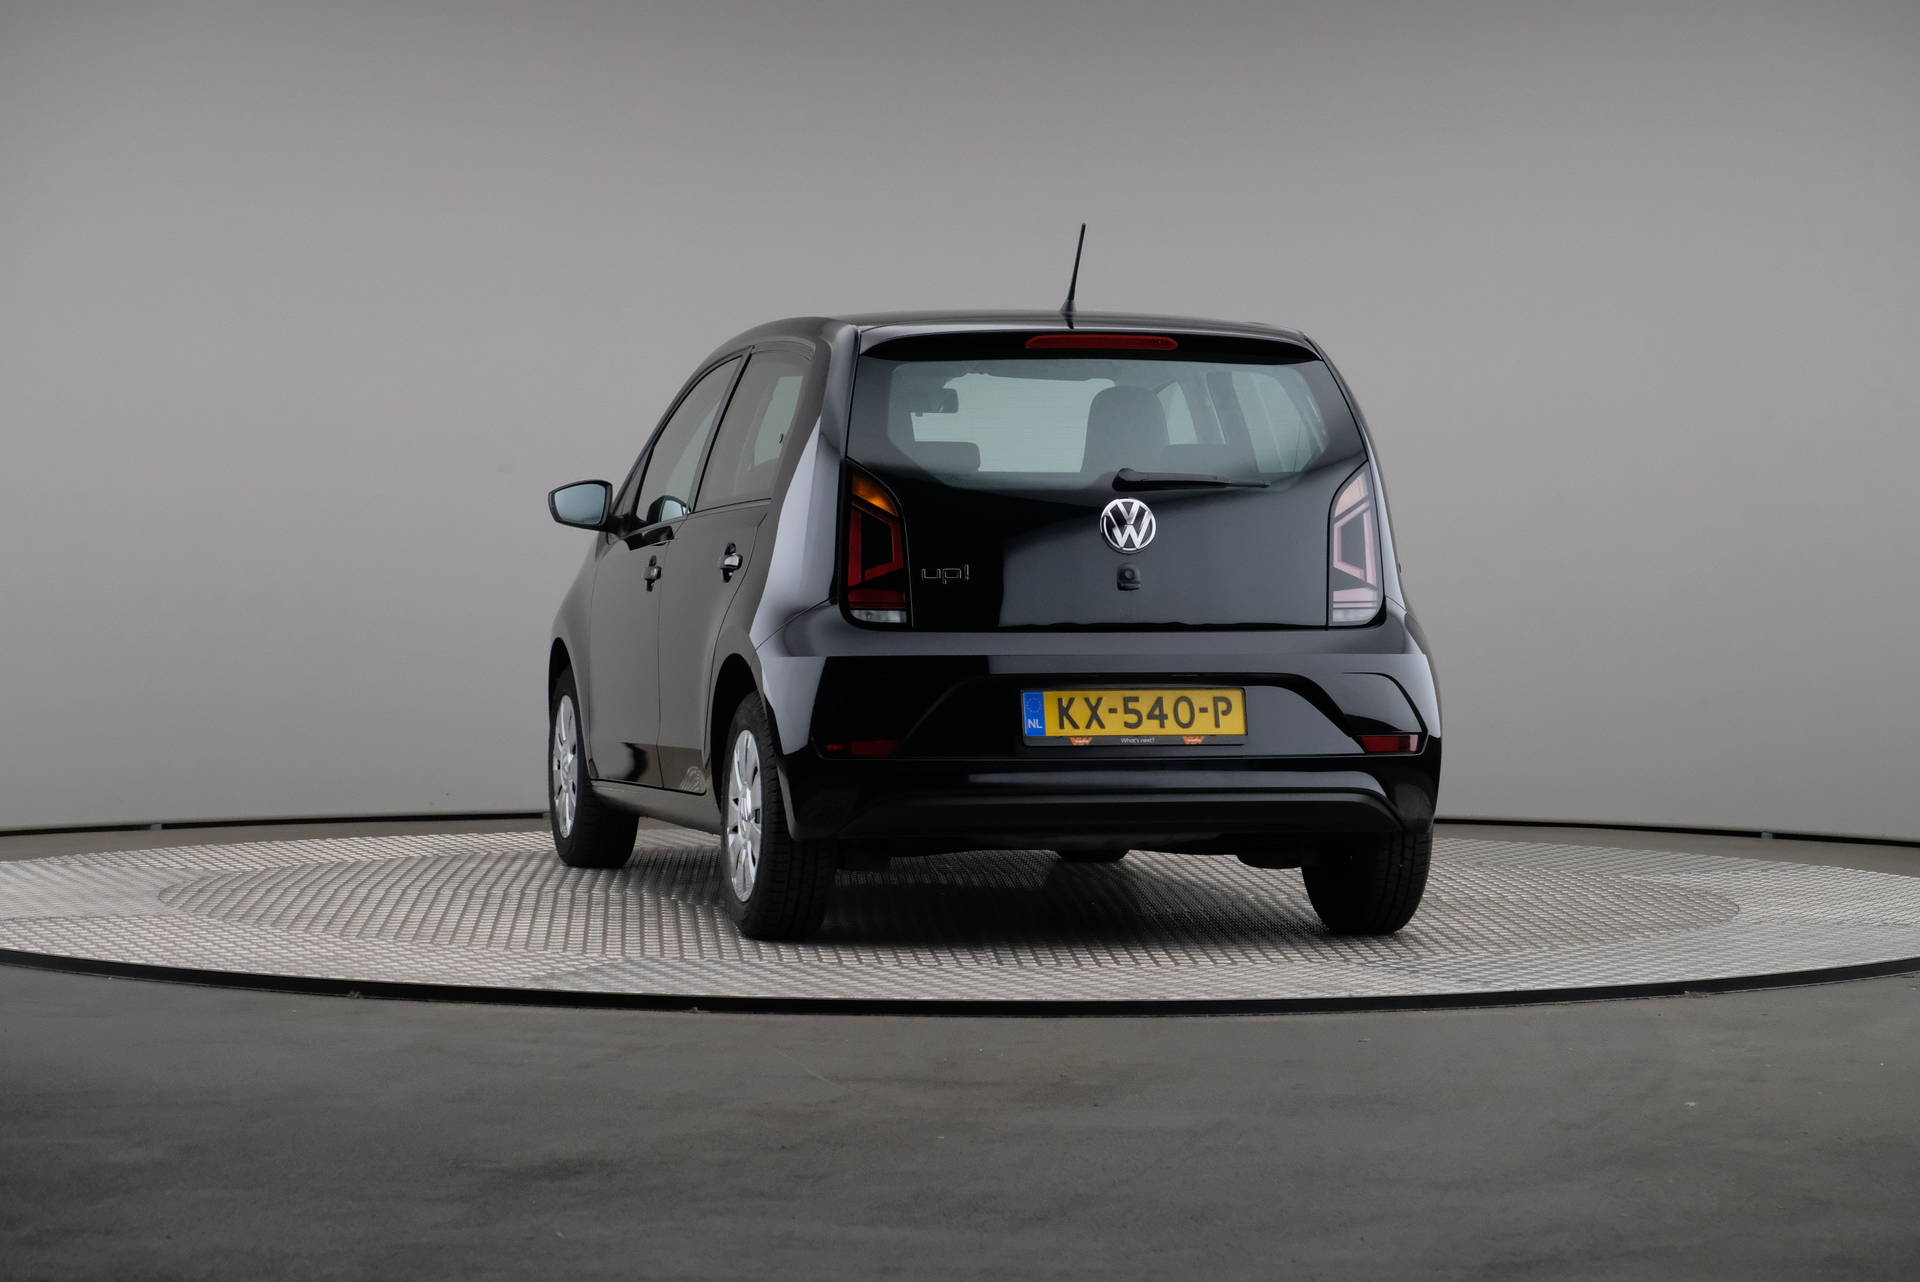 Volkswagen up! 1.0 44kW Move up! BlueMotion Technology, Airconditioning, 360-image13